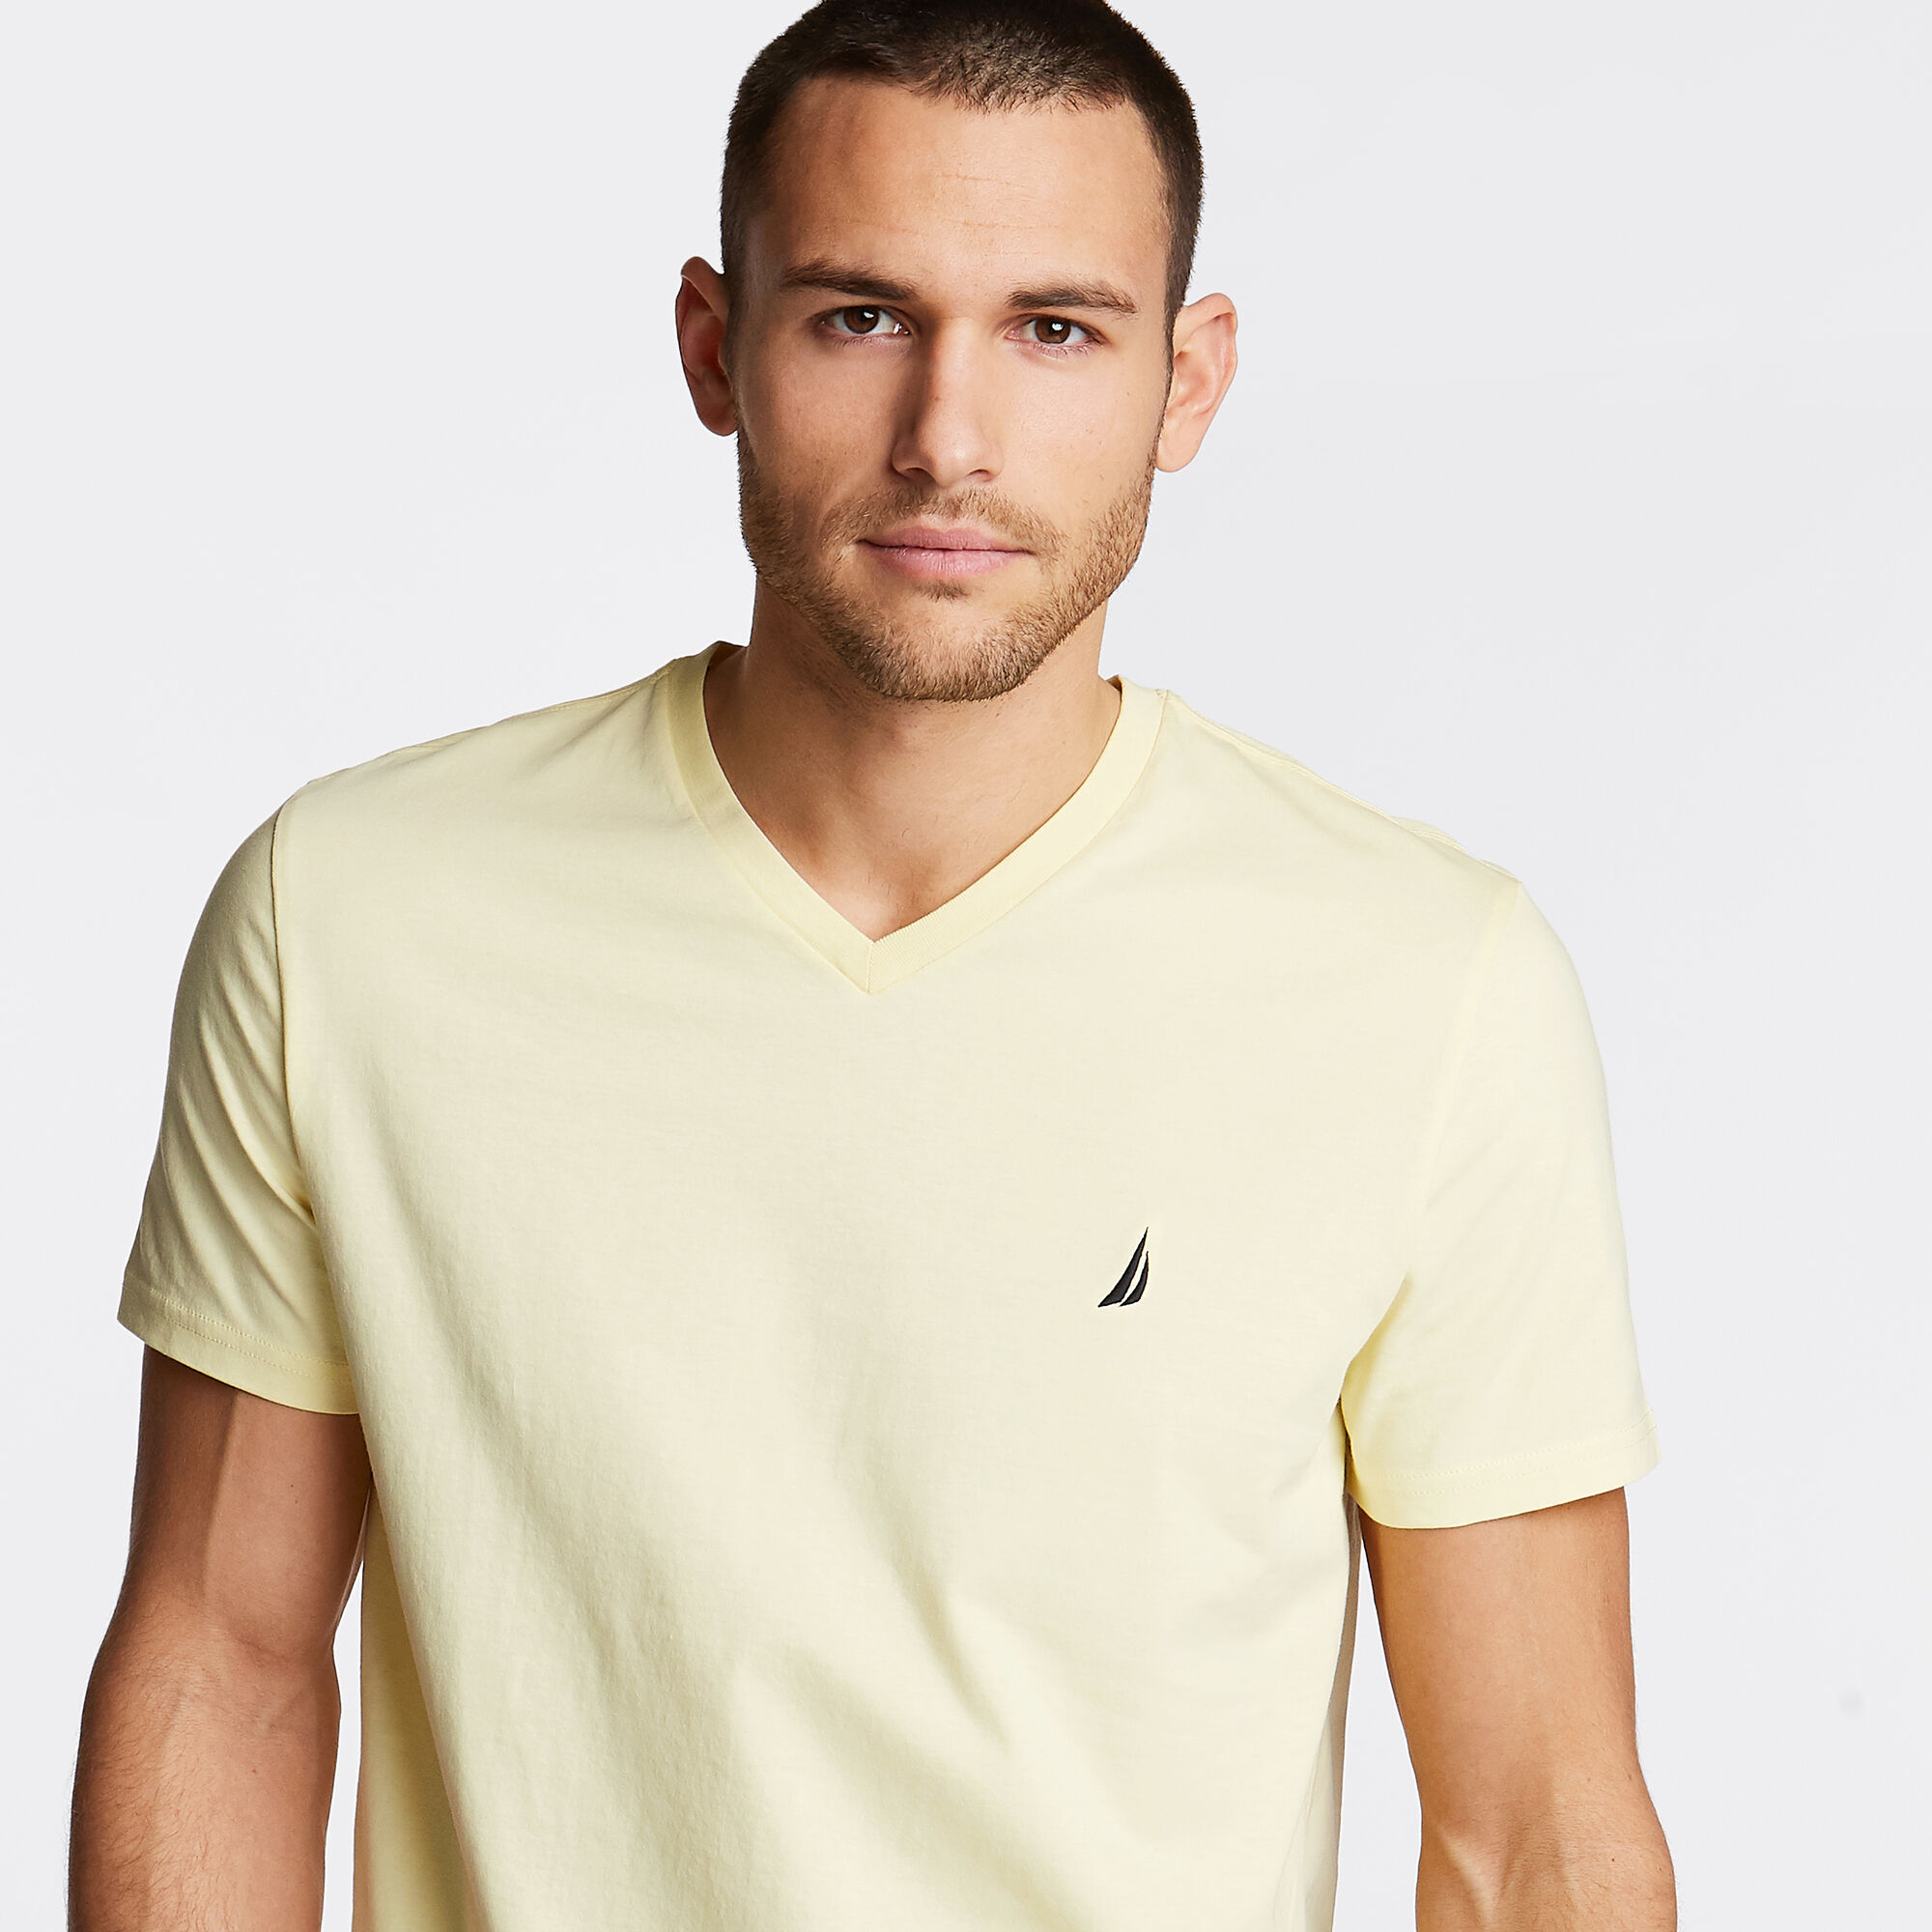 Nautica-Mens-V-Neck-Short-Sleeve-T-Shirt thumbnail 15